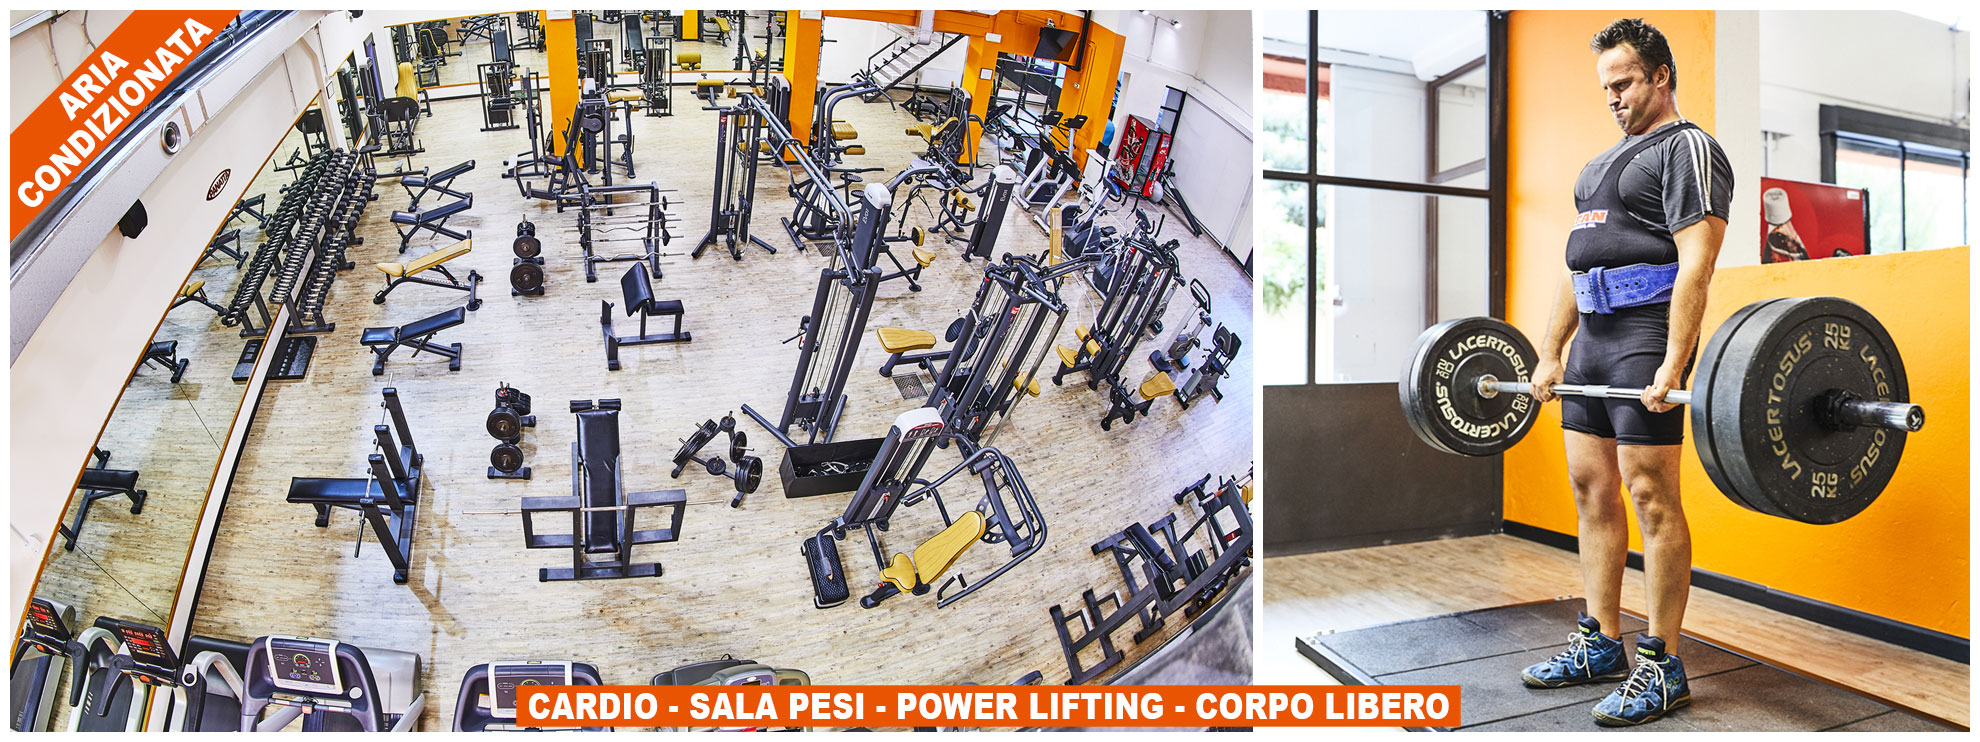 Cardio - Sala Pesi - Power Lifting - Corpo Libero